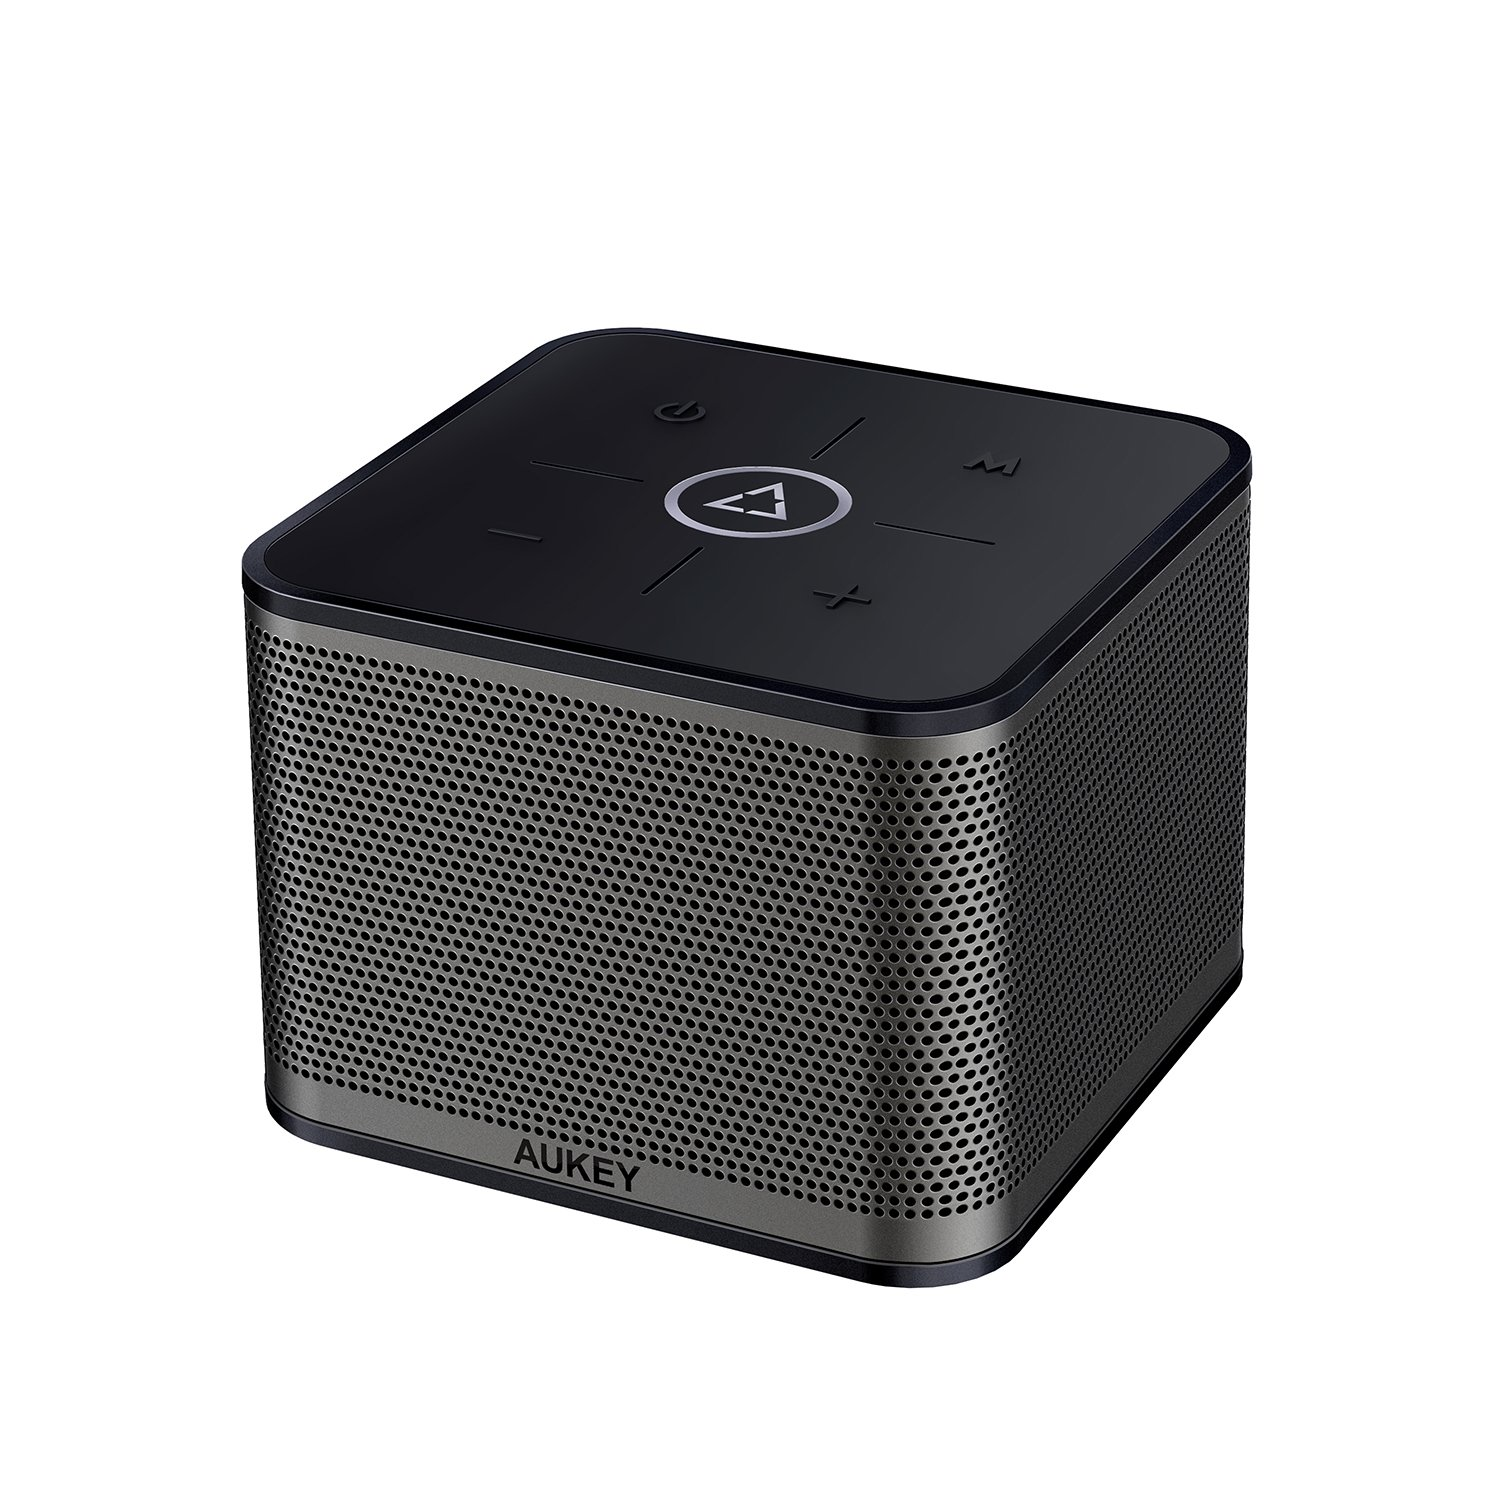 AUKEY AudioLink WiFi Bluetooth Speaker, Wireless Multiroom Speaker with Boosted Bass and Stereo Mode